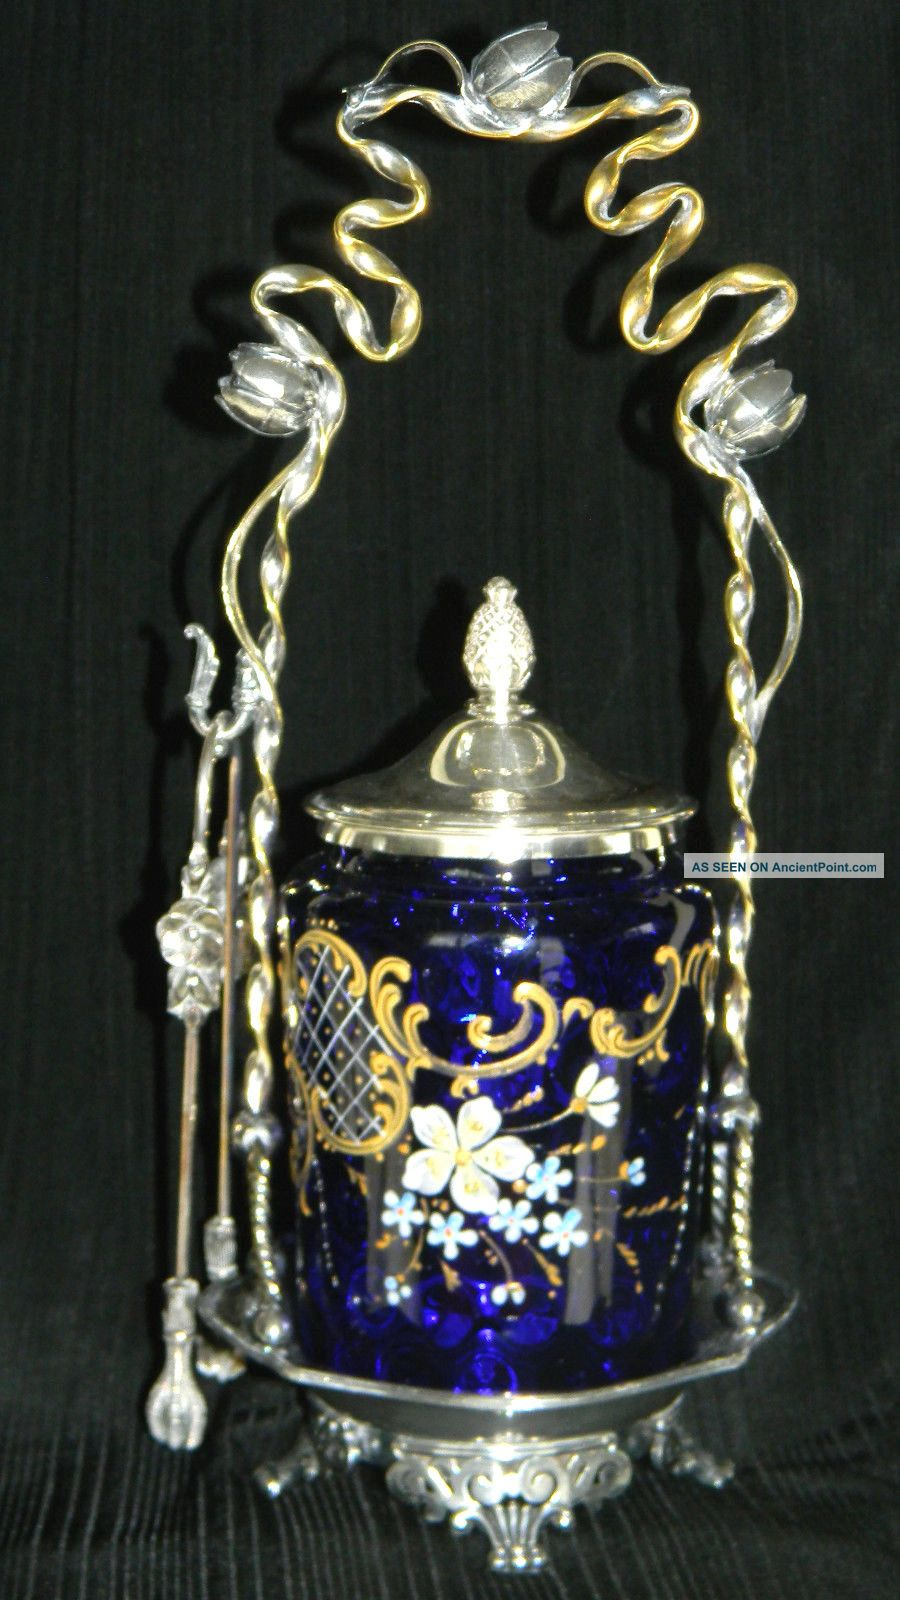 Antique Victorian Pickle Castor Cobalt Blue Insert With Flowers And Gold Motives Other Antique Silverplate photo